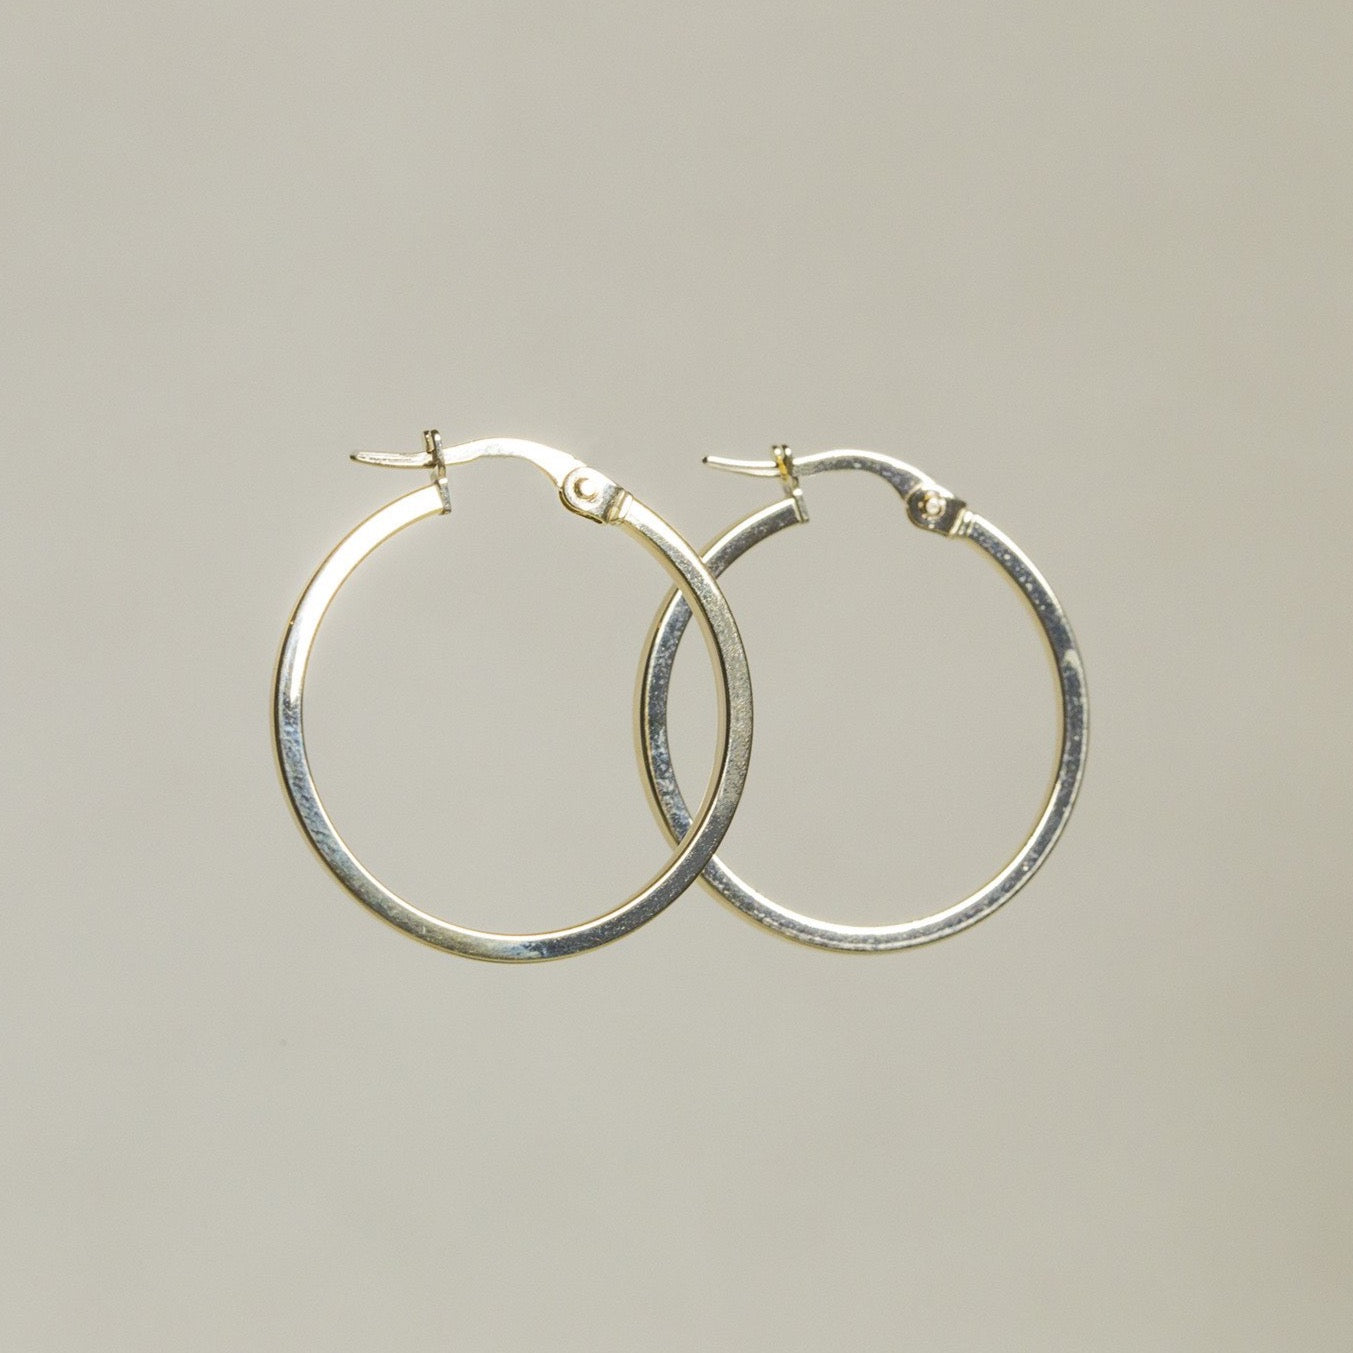 adorable, modern looking large everyday gold hoops